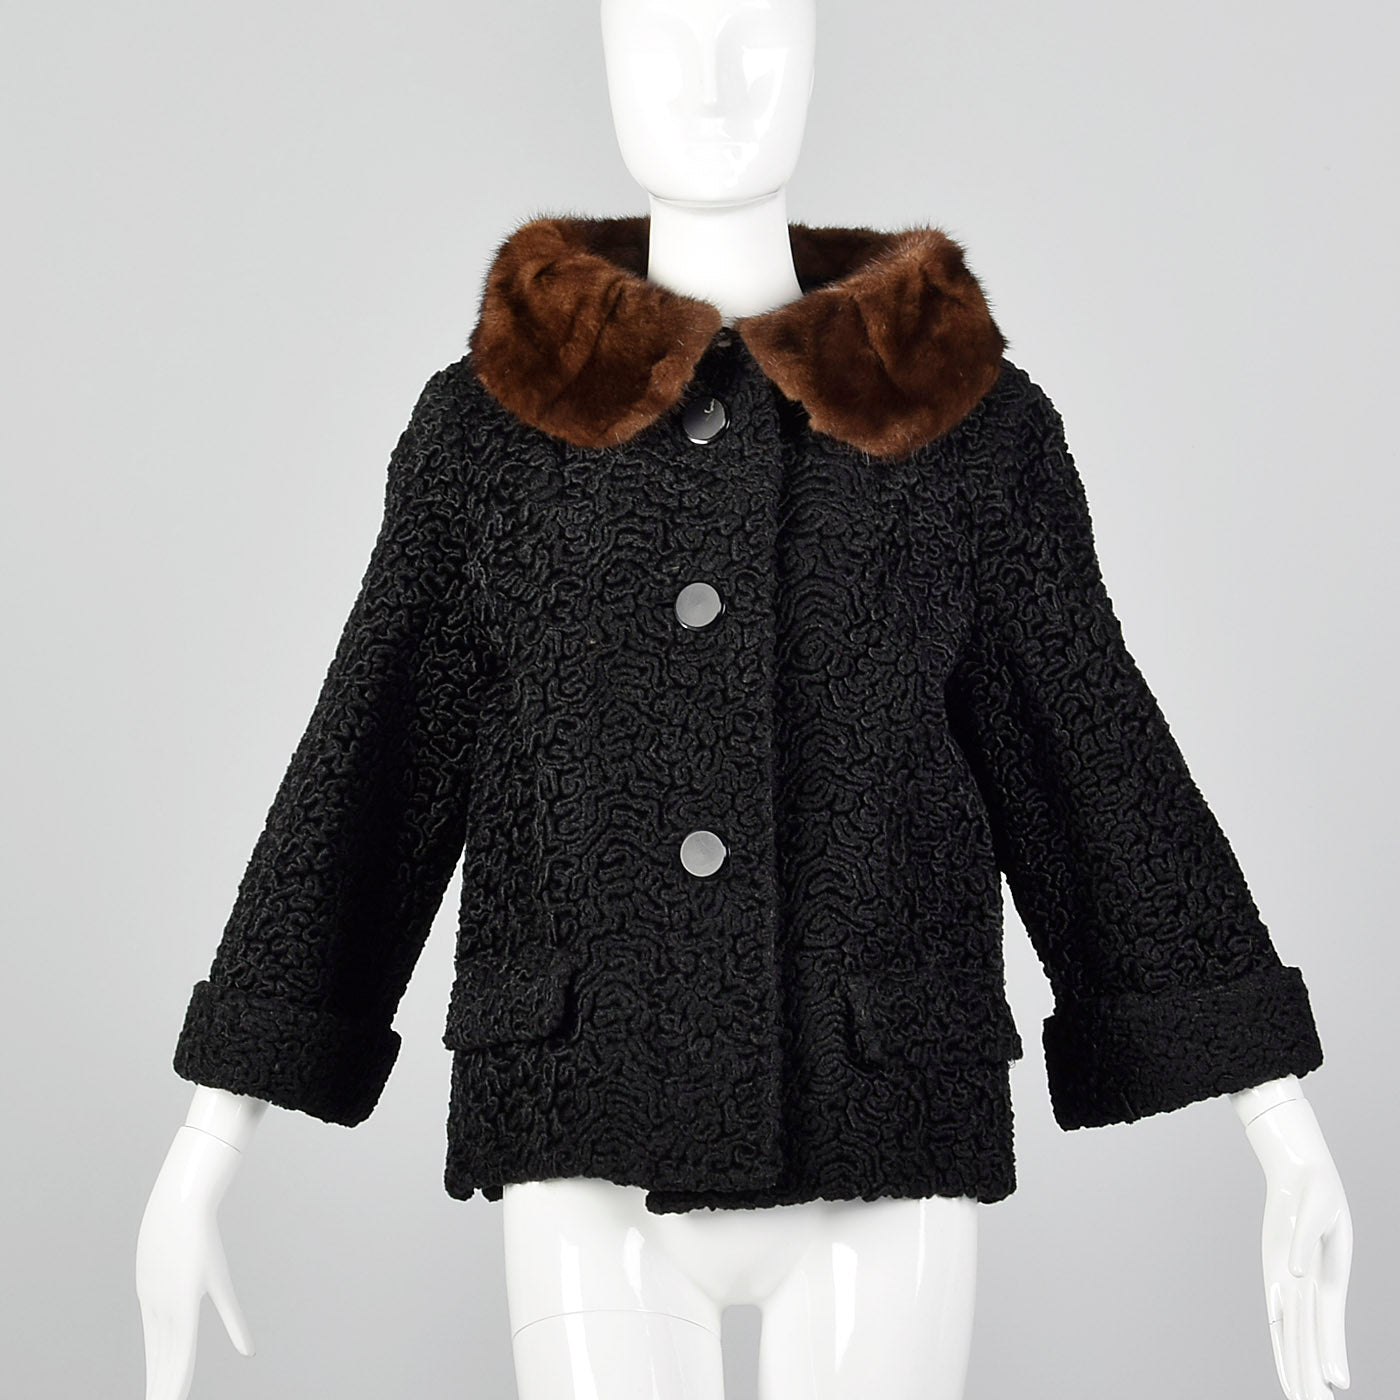 1950s Persian Lamb Jacket with Mink Collar